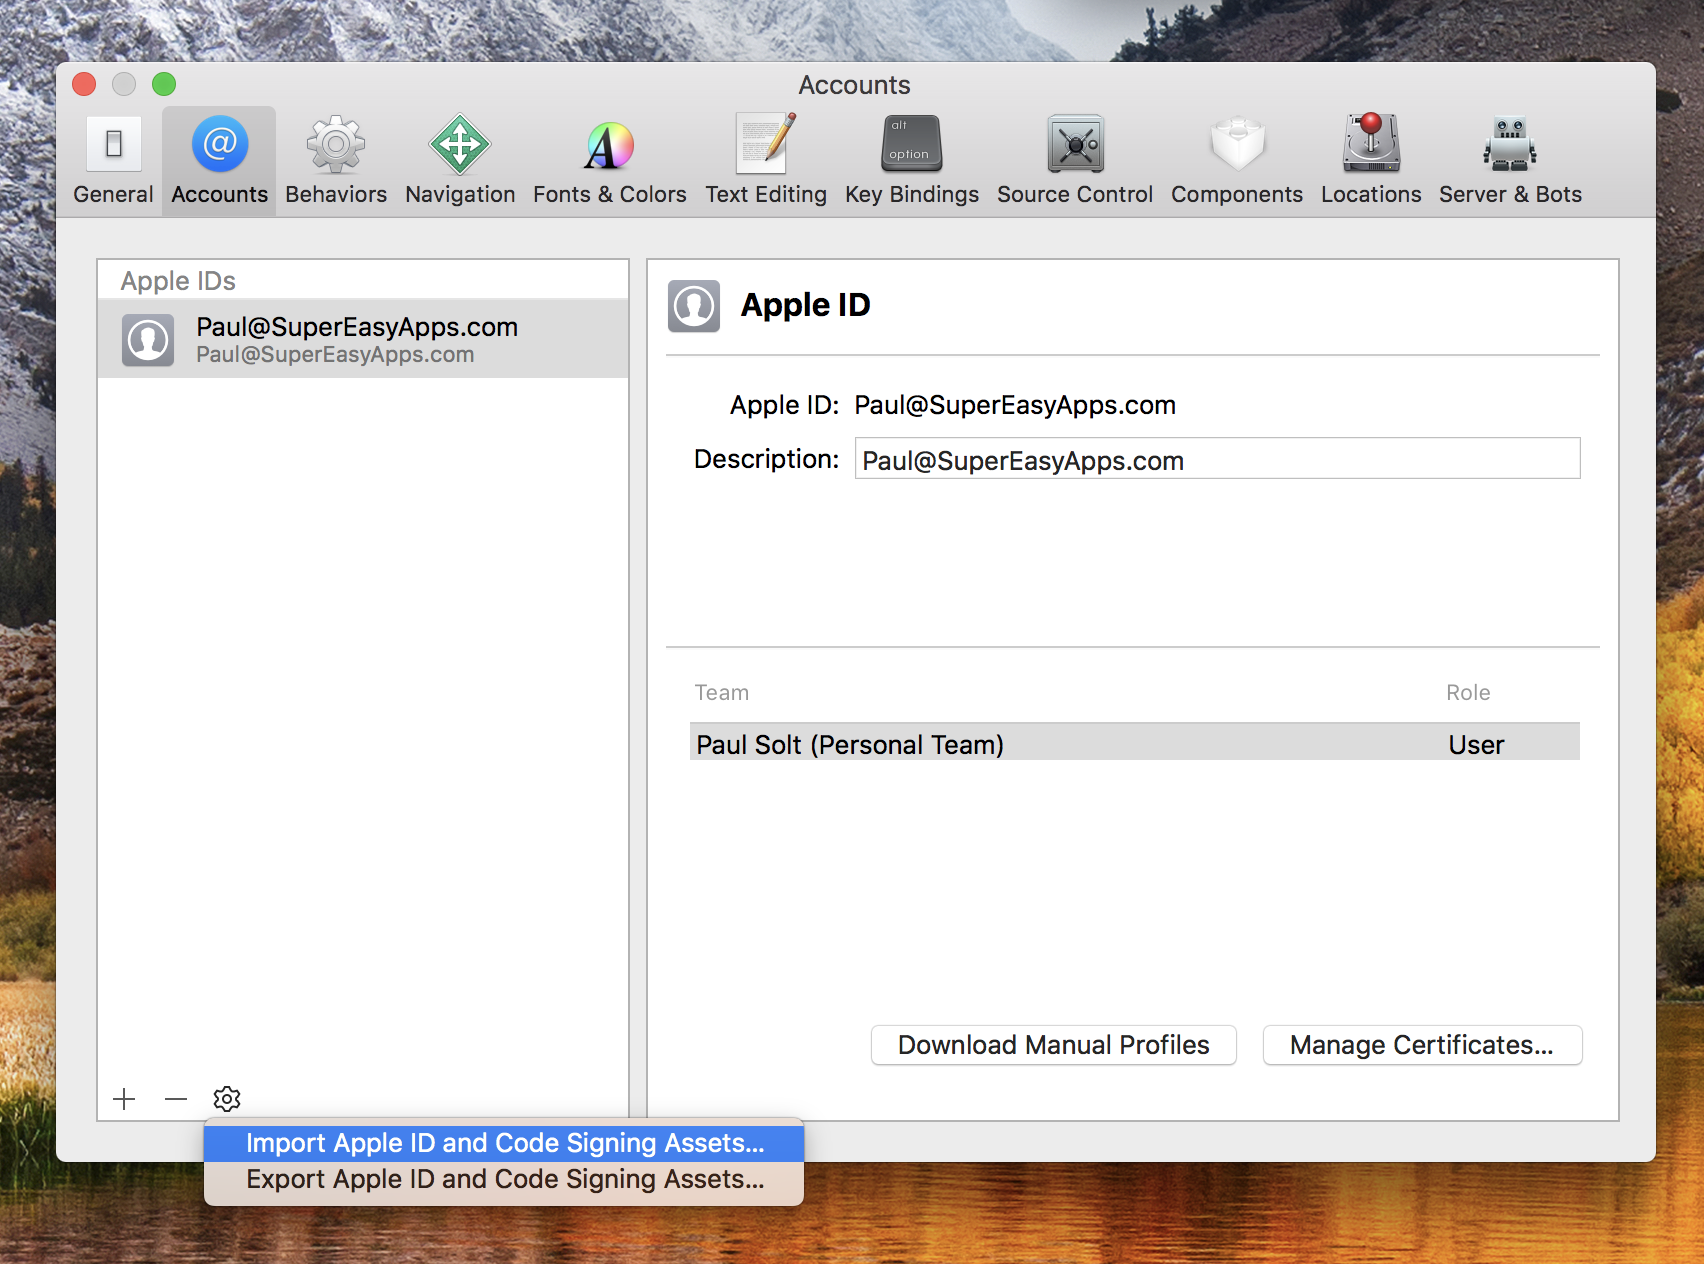 Import Apple ID and Code Signing Assets...